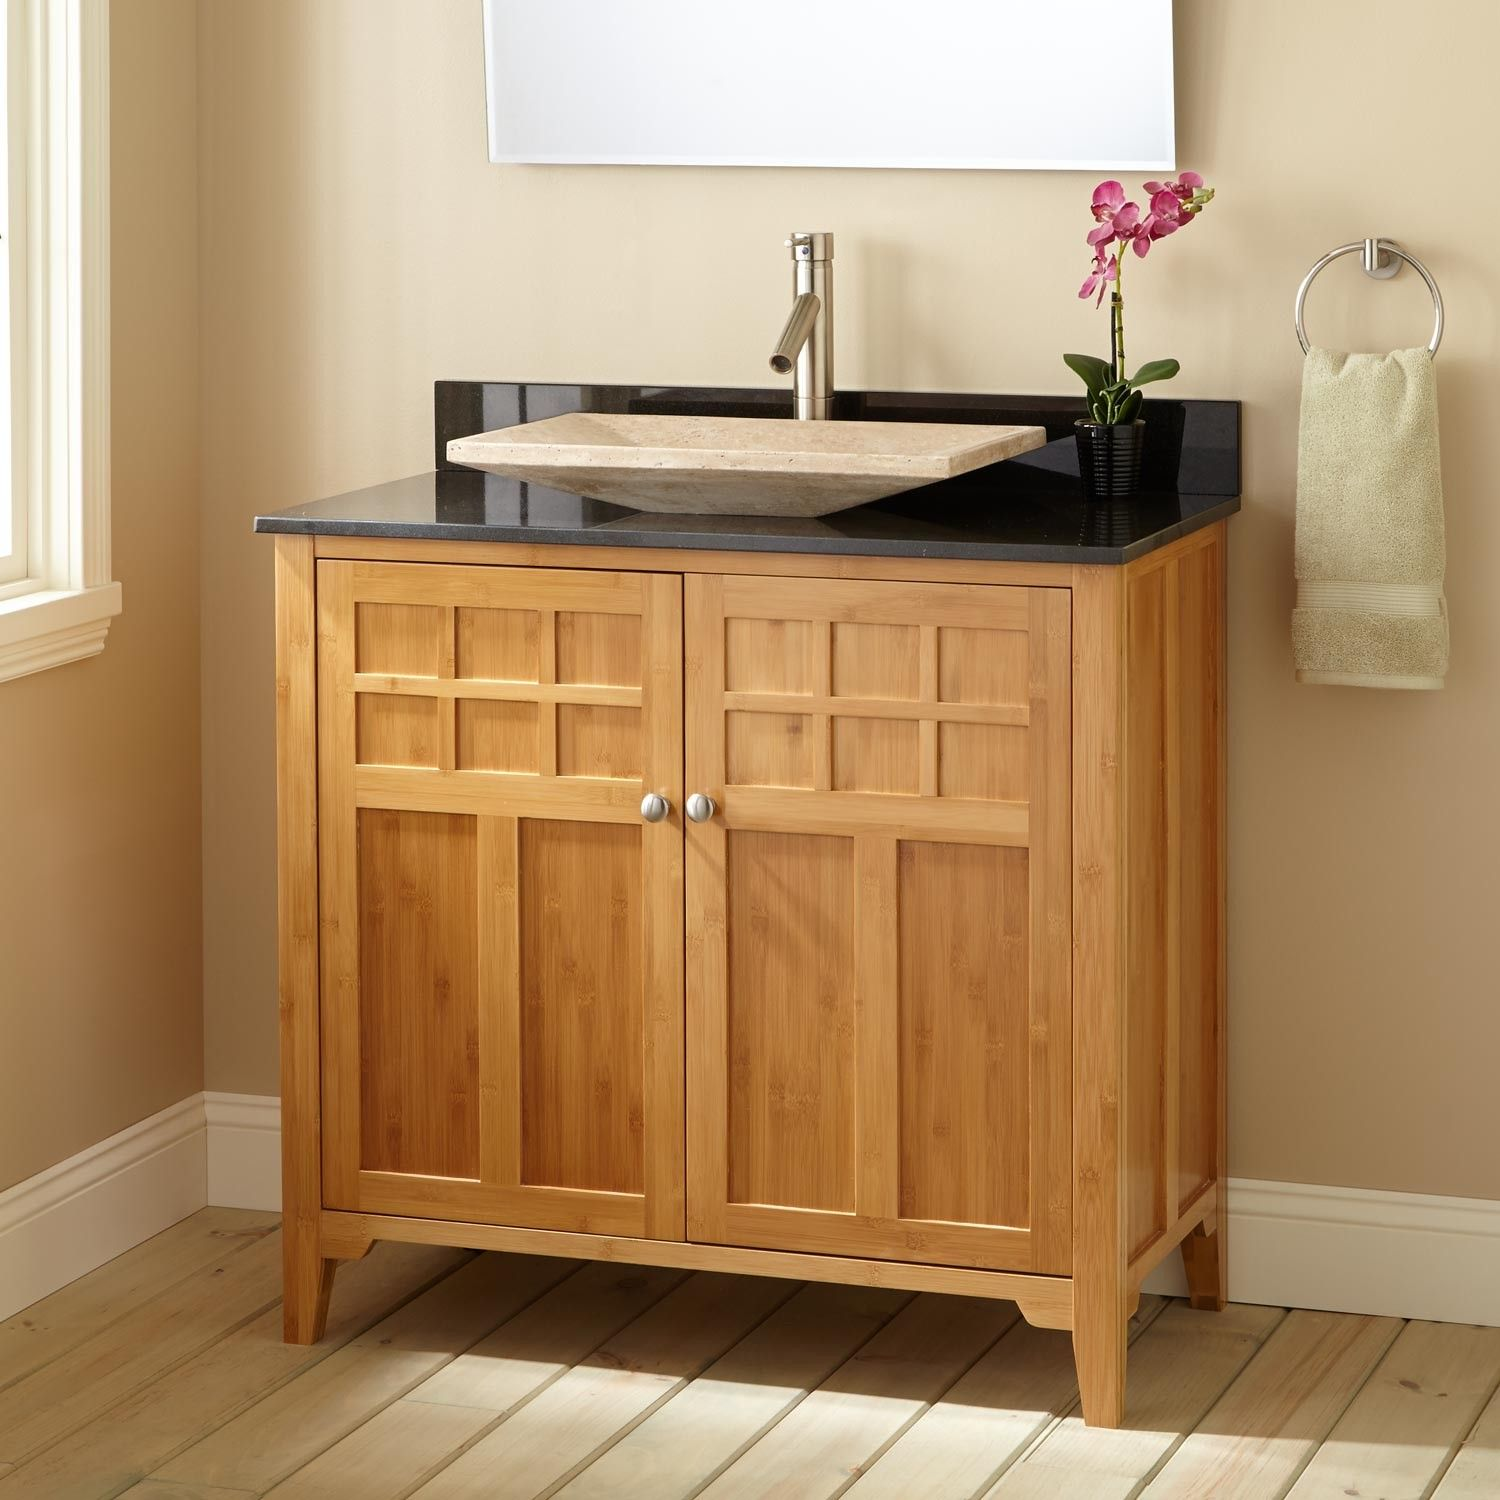 to size double photos shipping vanities vanity cabinets awesome bathroom ideas small narrow inches sink shop kitchen spaces round full with storage free for of cabinet